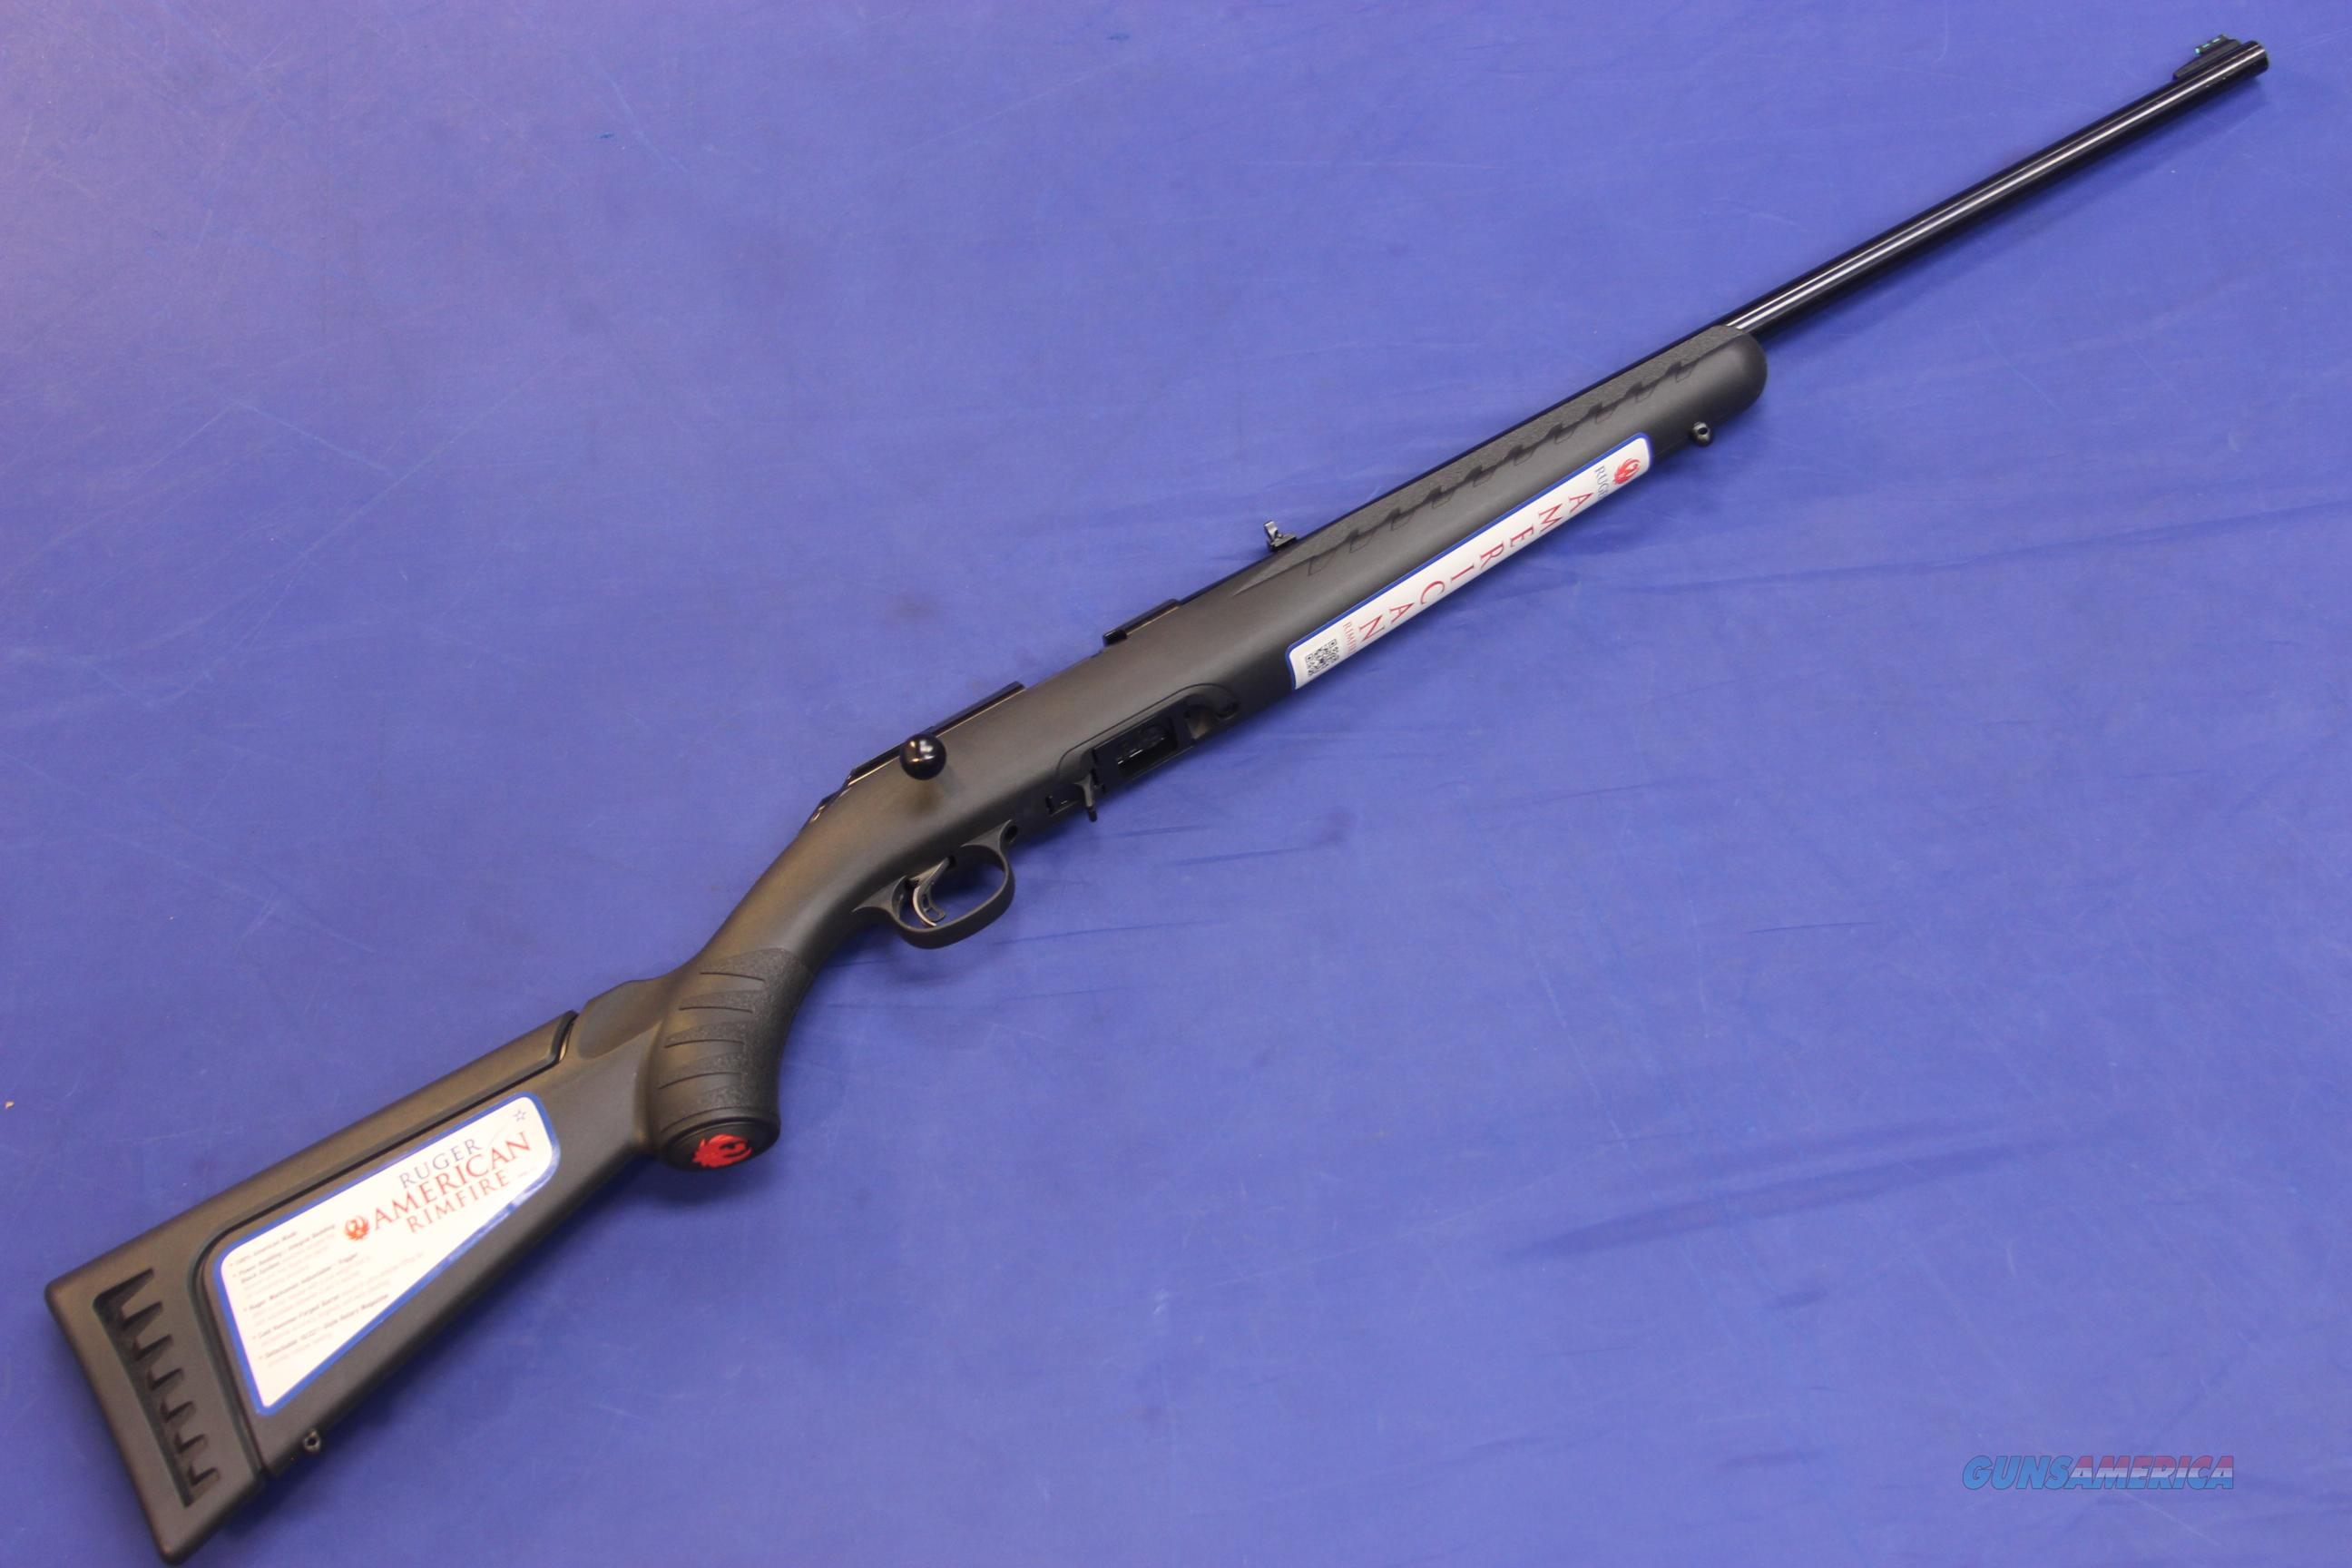 RUGER AMERICAN RIMFIRE .22 LONG RIFLE - NEW!  Guns > Rifles > Ruger Rifles > American